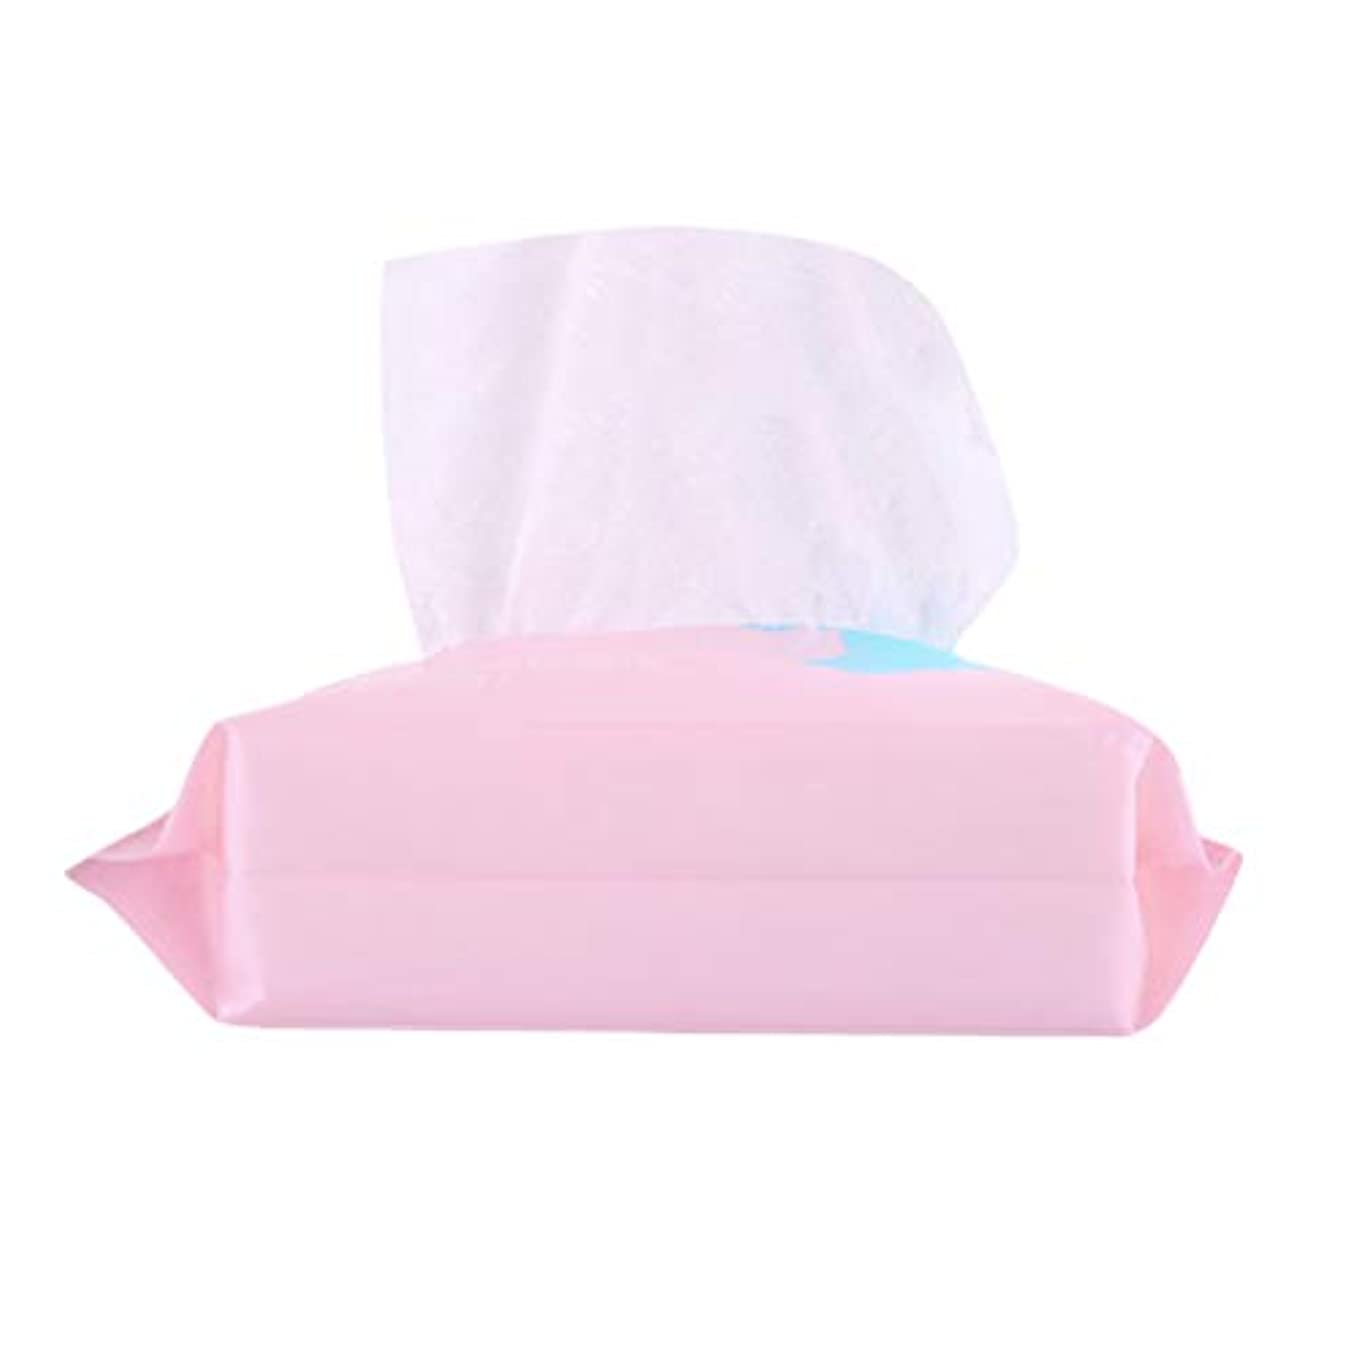 抵抗同化する配るLurrose 1 Bag Disposable Face Towel Facial Cotton Tissue Soft Cotton Pads Makeup Facial Soft Pads Pink (100pcs...